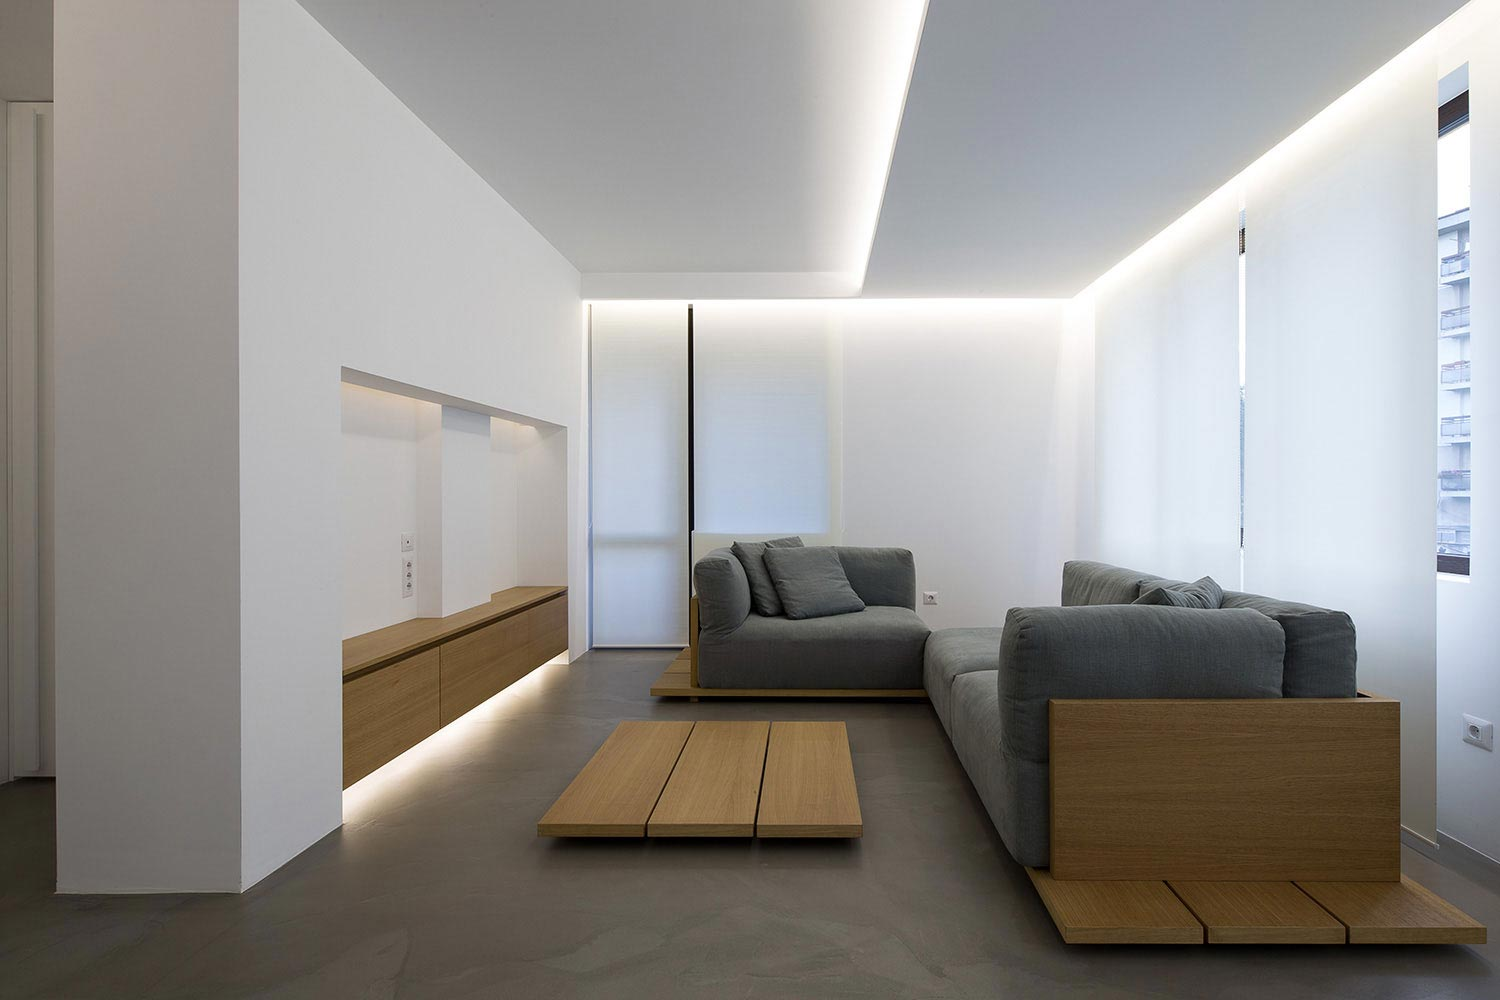 Clean environment of apartment p in sofia bulgaria by for Clean interior design